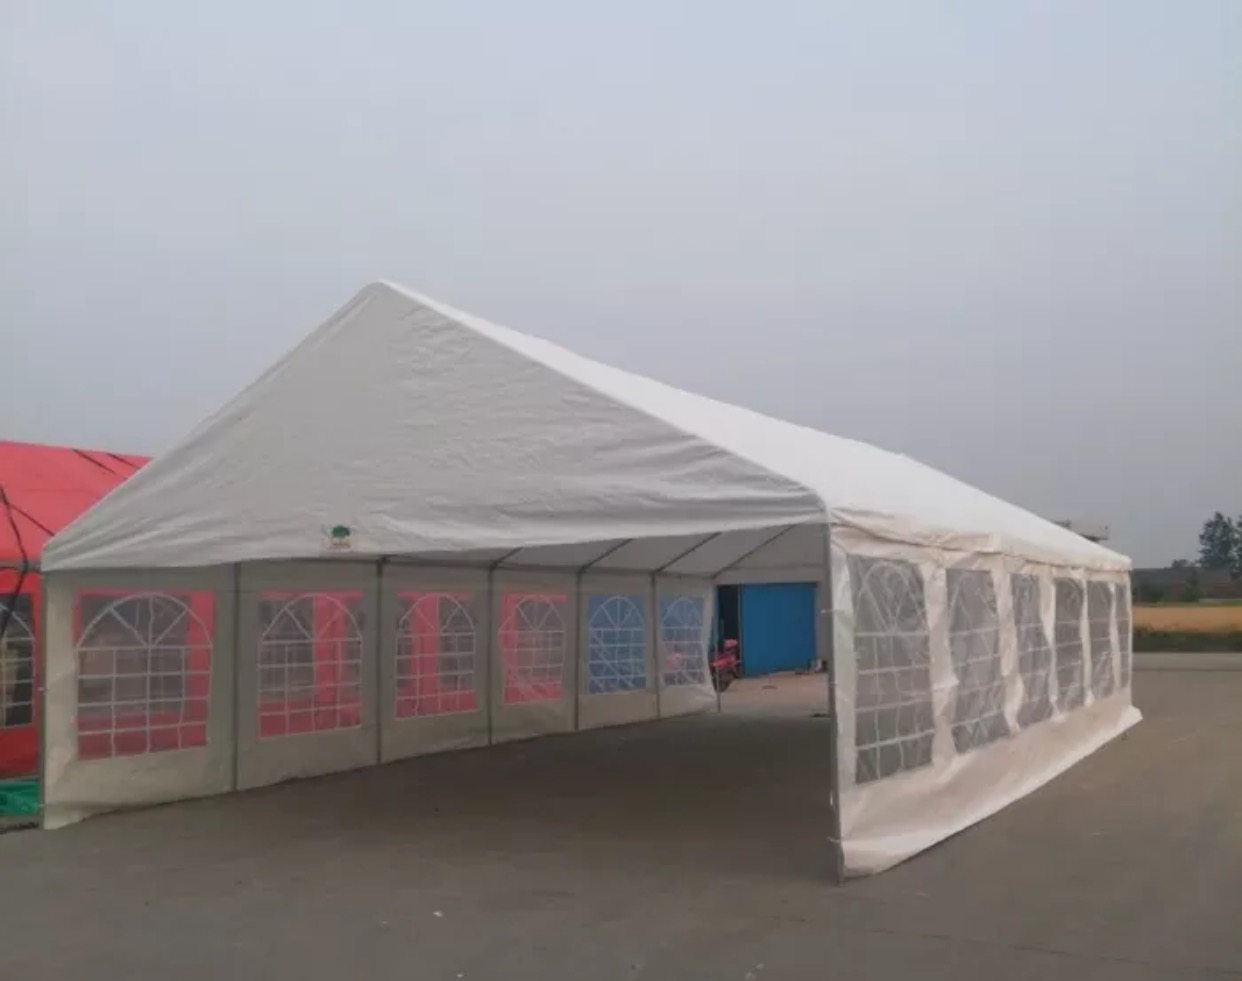 20u0027x40u0027 Heavy Duty Event Party Wedding Tent Canopy Carport & 20u0027x40u0027 Heavy Duty Event Party Wedding Tent Canopy Carport W ...